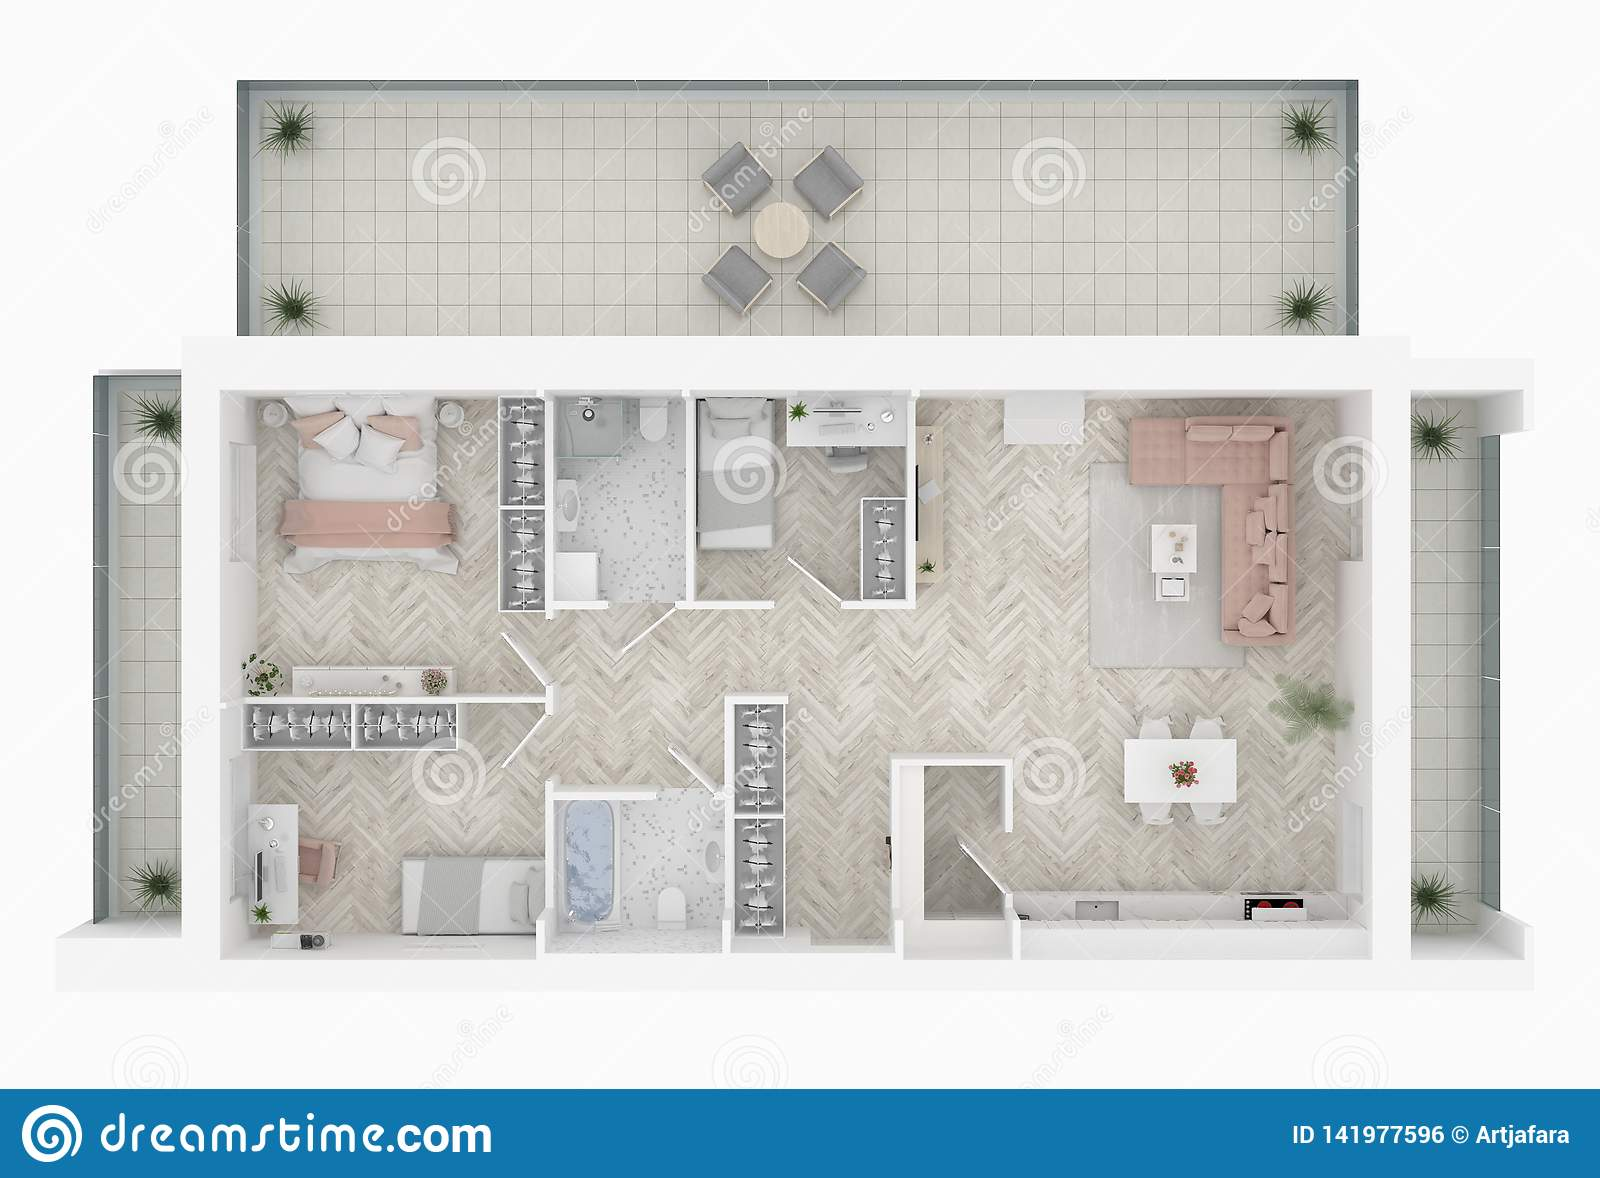 Floor plan of a home top view. Open concept living apartment layout